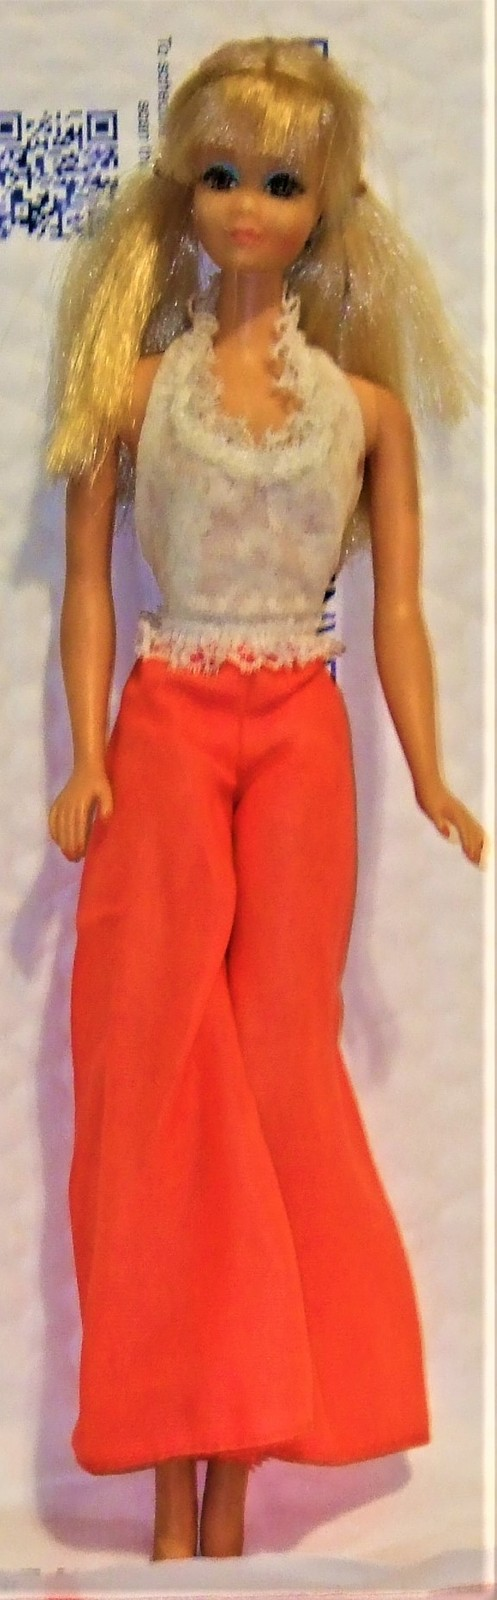 Primary image for Vintage (Barbie) PJ Doll Twist 'N Turn PJ  Mattel